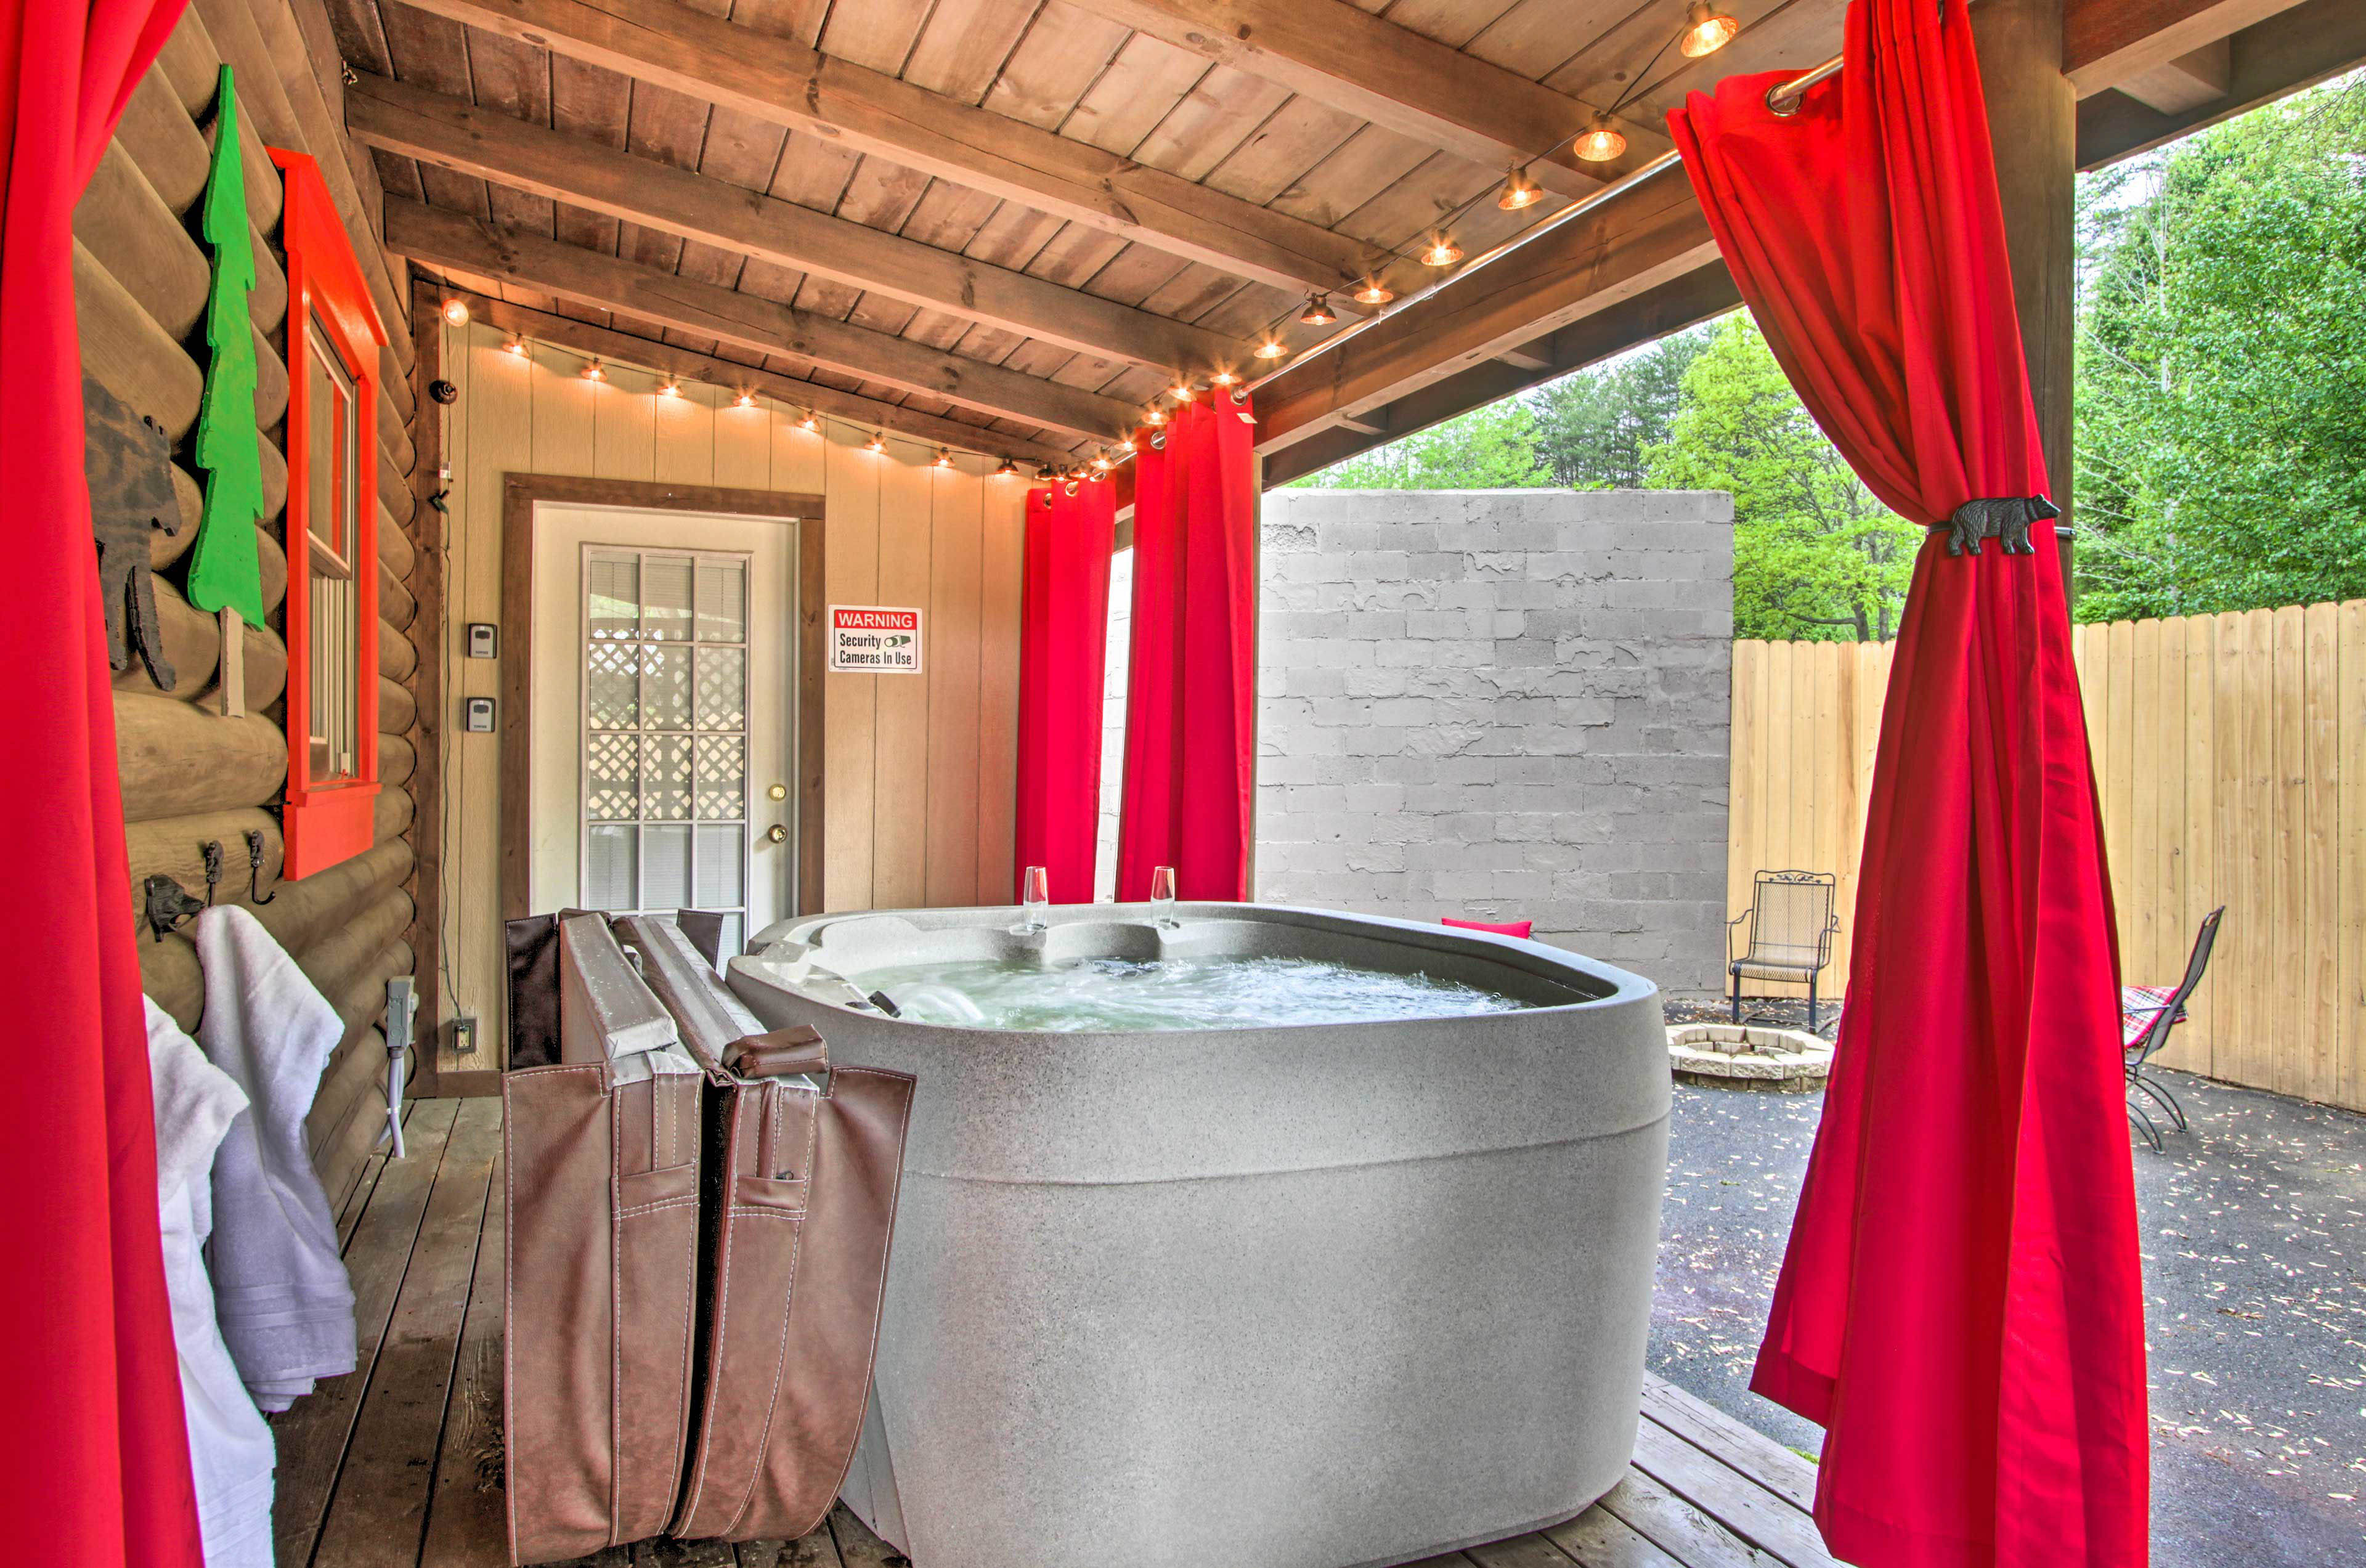 Head outside to enjoy amenities including a hot tub.